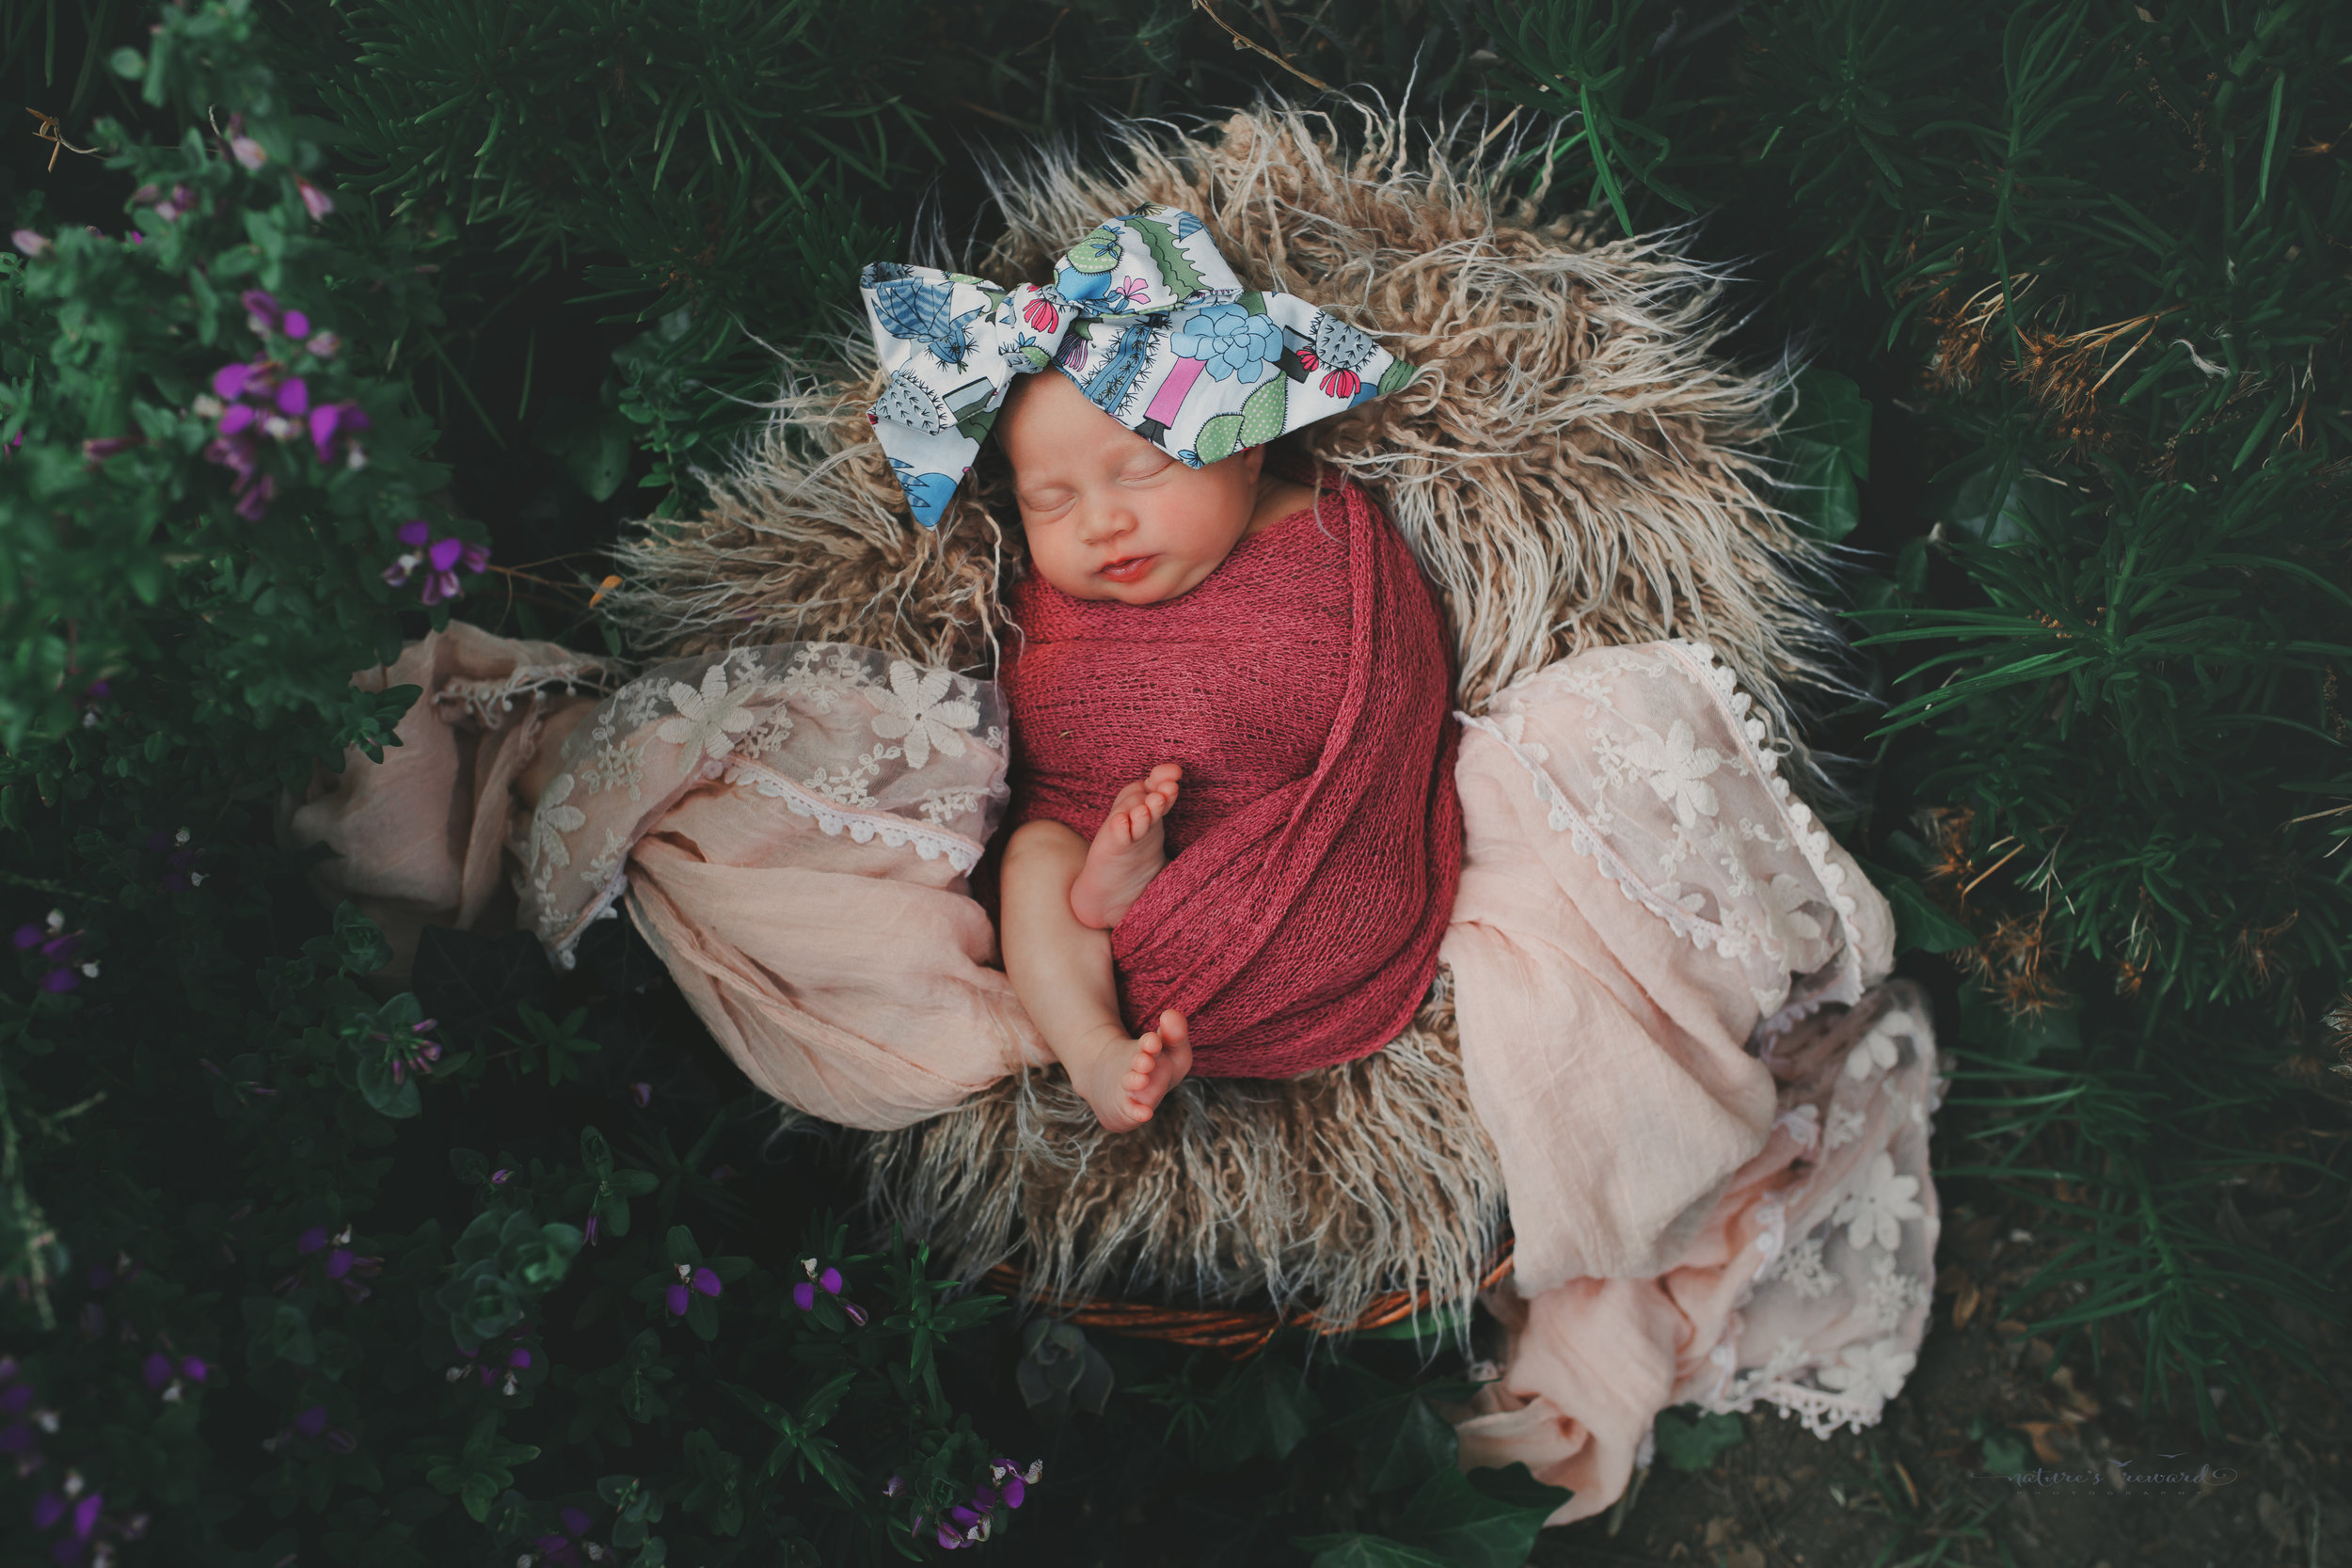 Newborn baby girl in a succulent and flower garden on a bed of fur wearing pinks and blue, a baby portrait by Nature's Reward Photography